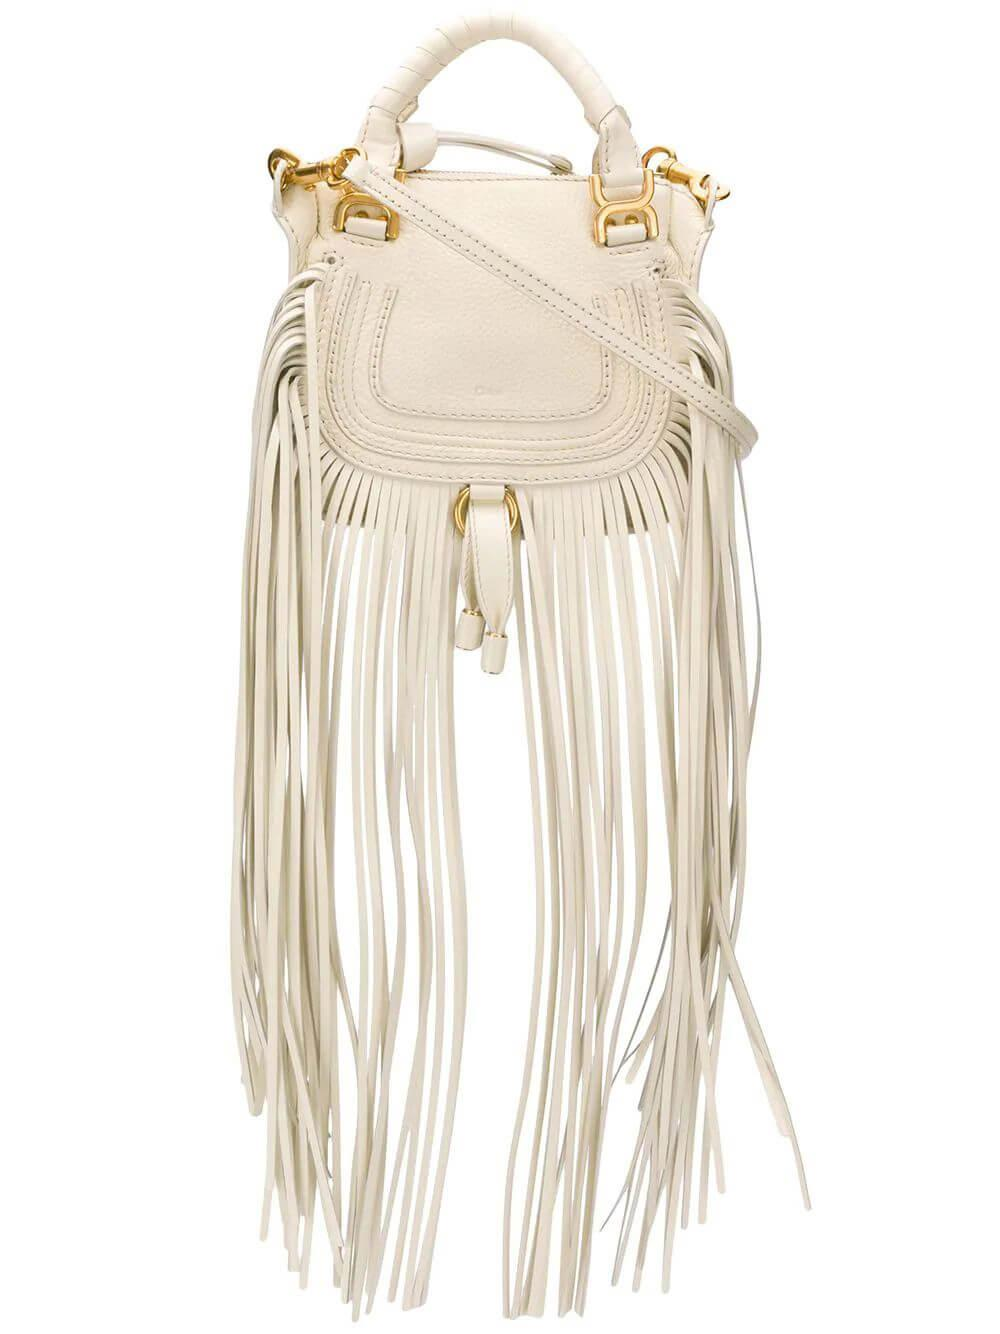 Marcie Mini Double Carry Bag With Fringe